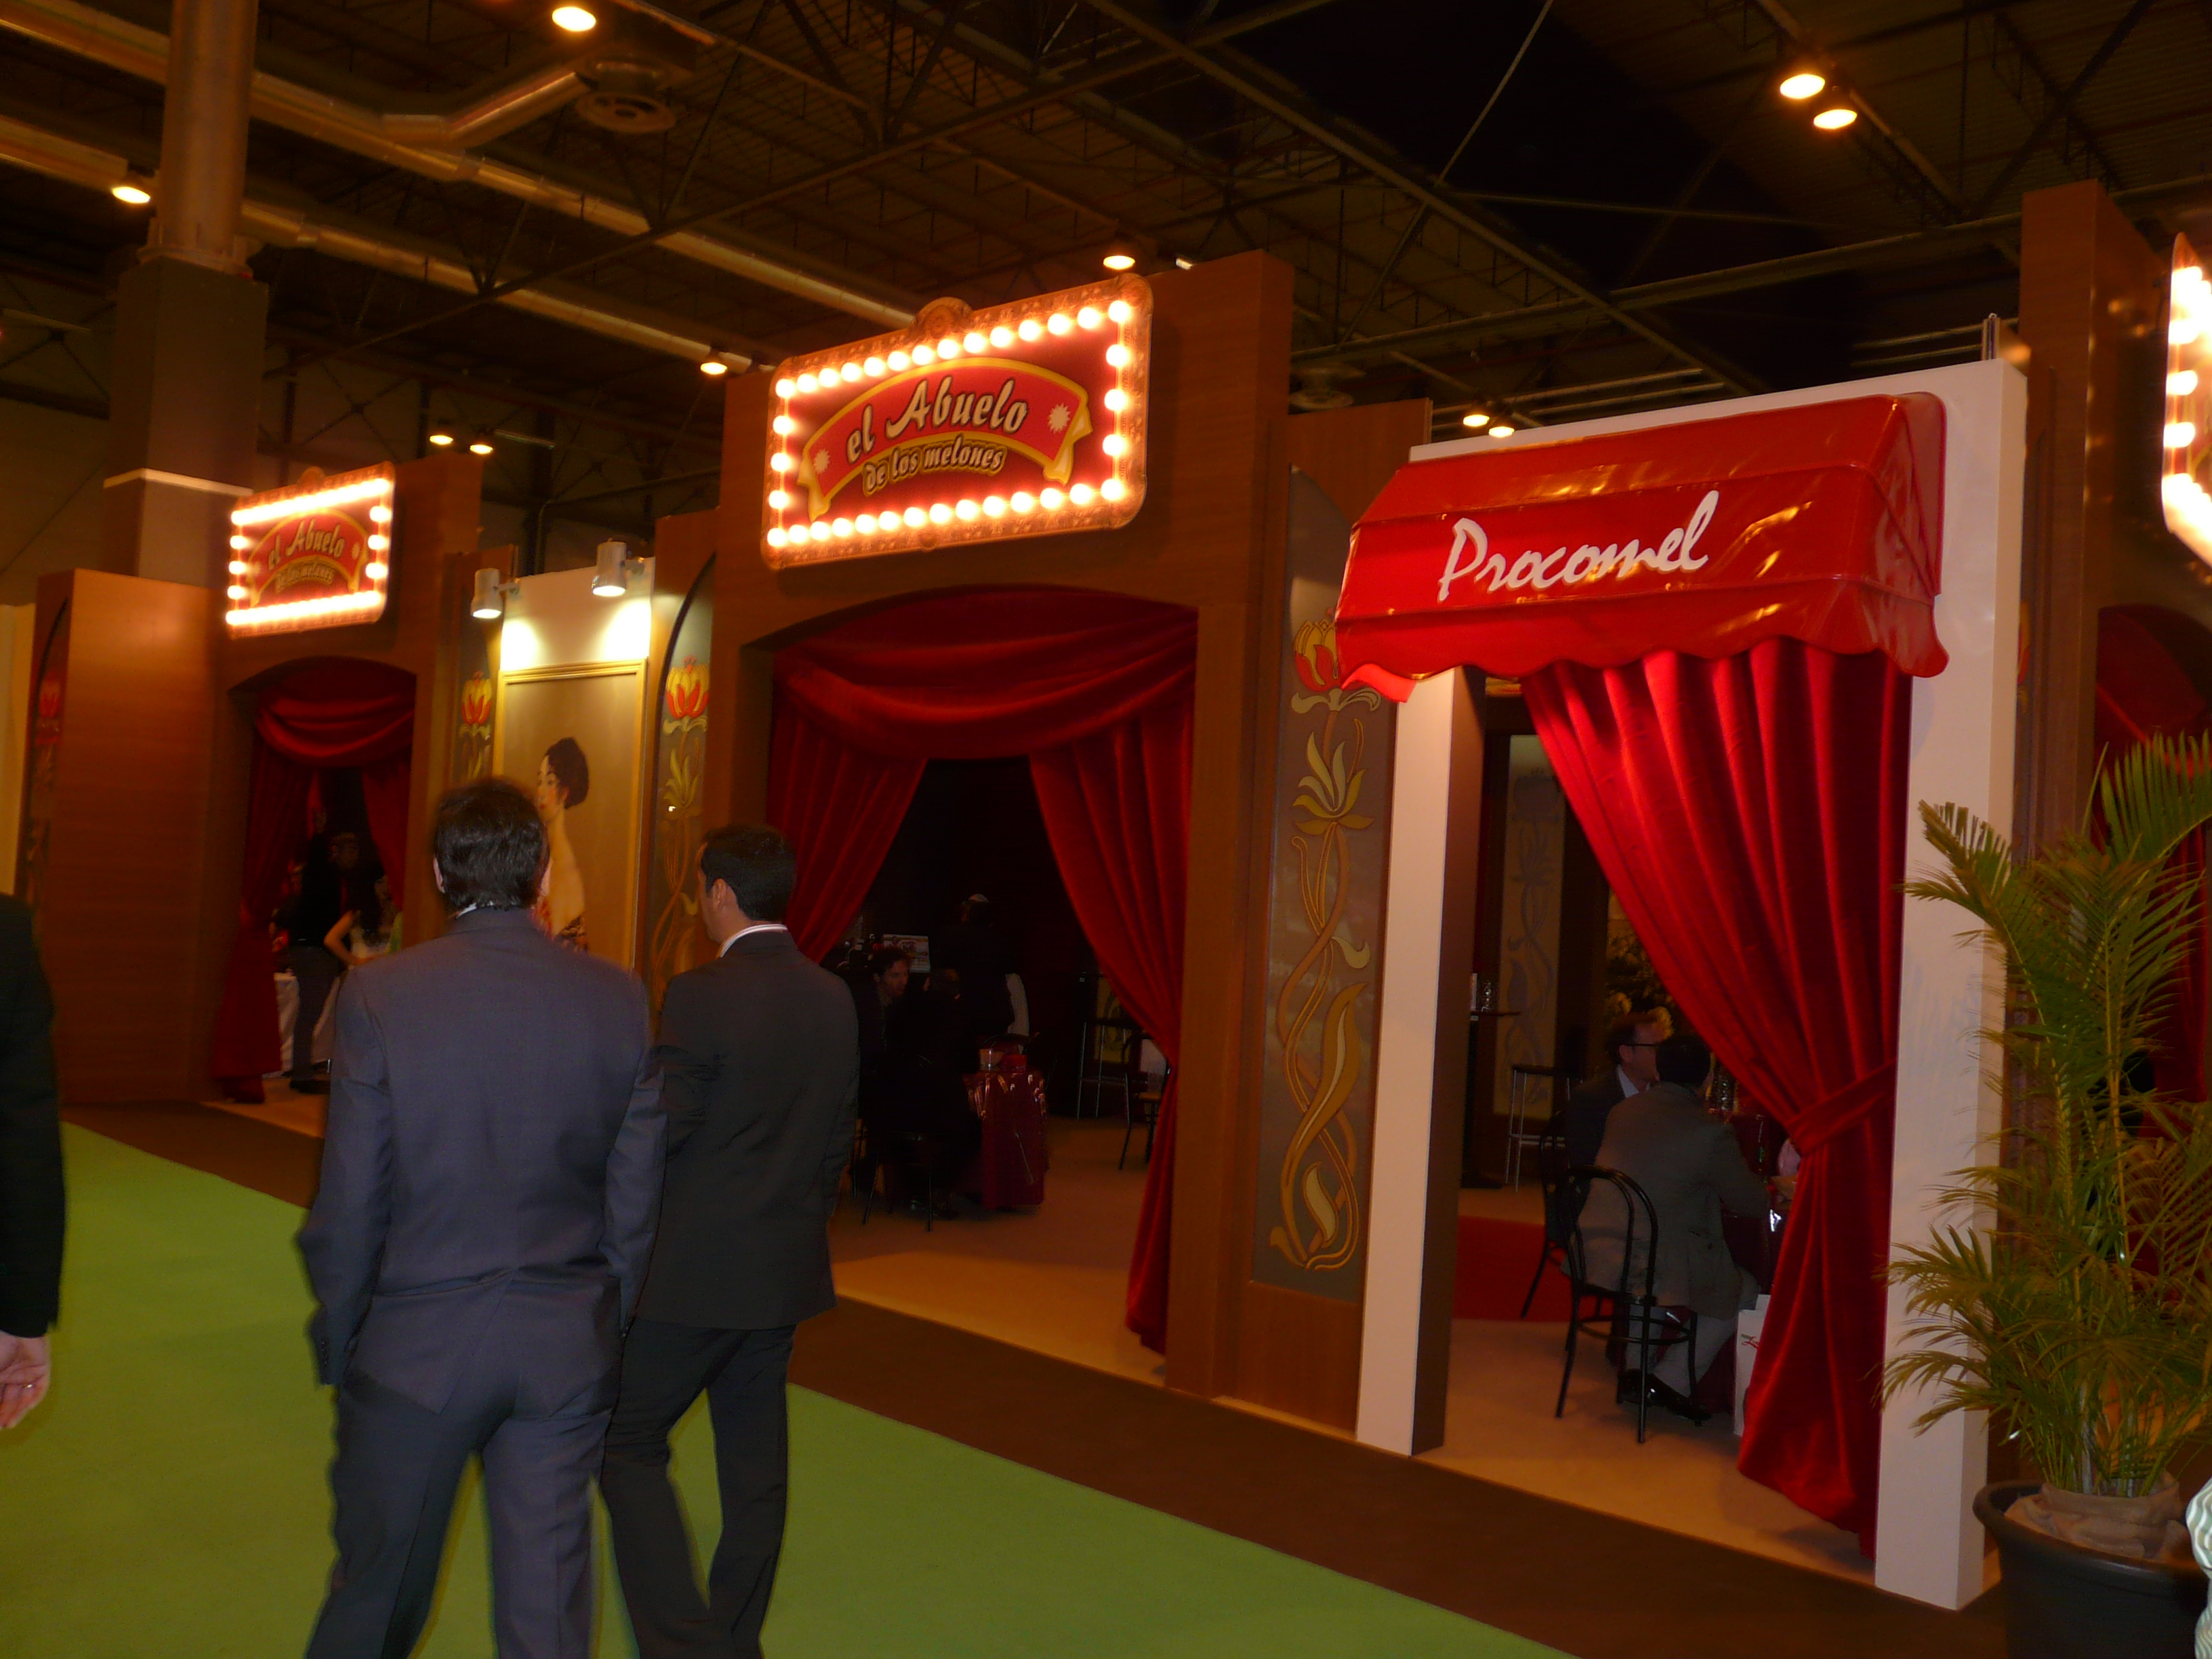 Procomel's stand - probably the most eye catching at this year's show. Seemed to be pitched somewhere between a bordello and cabaret bar from 1930's Berlin